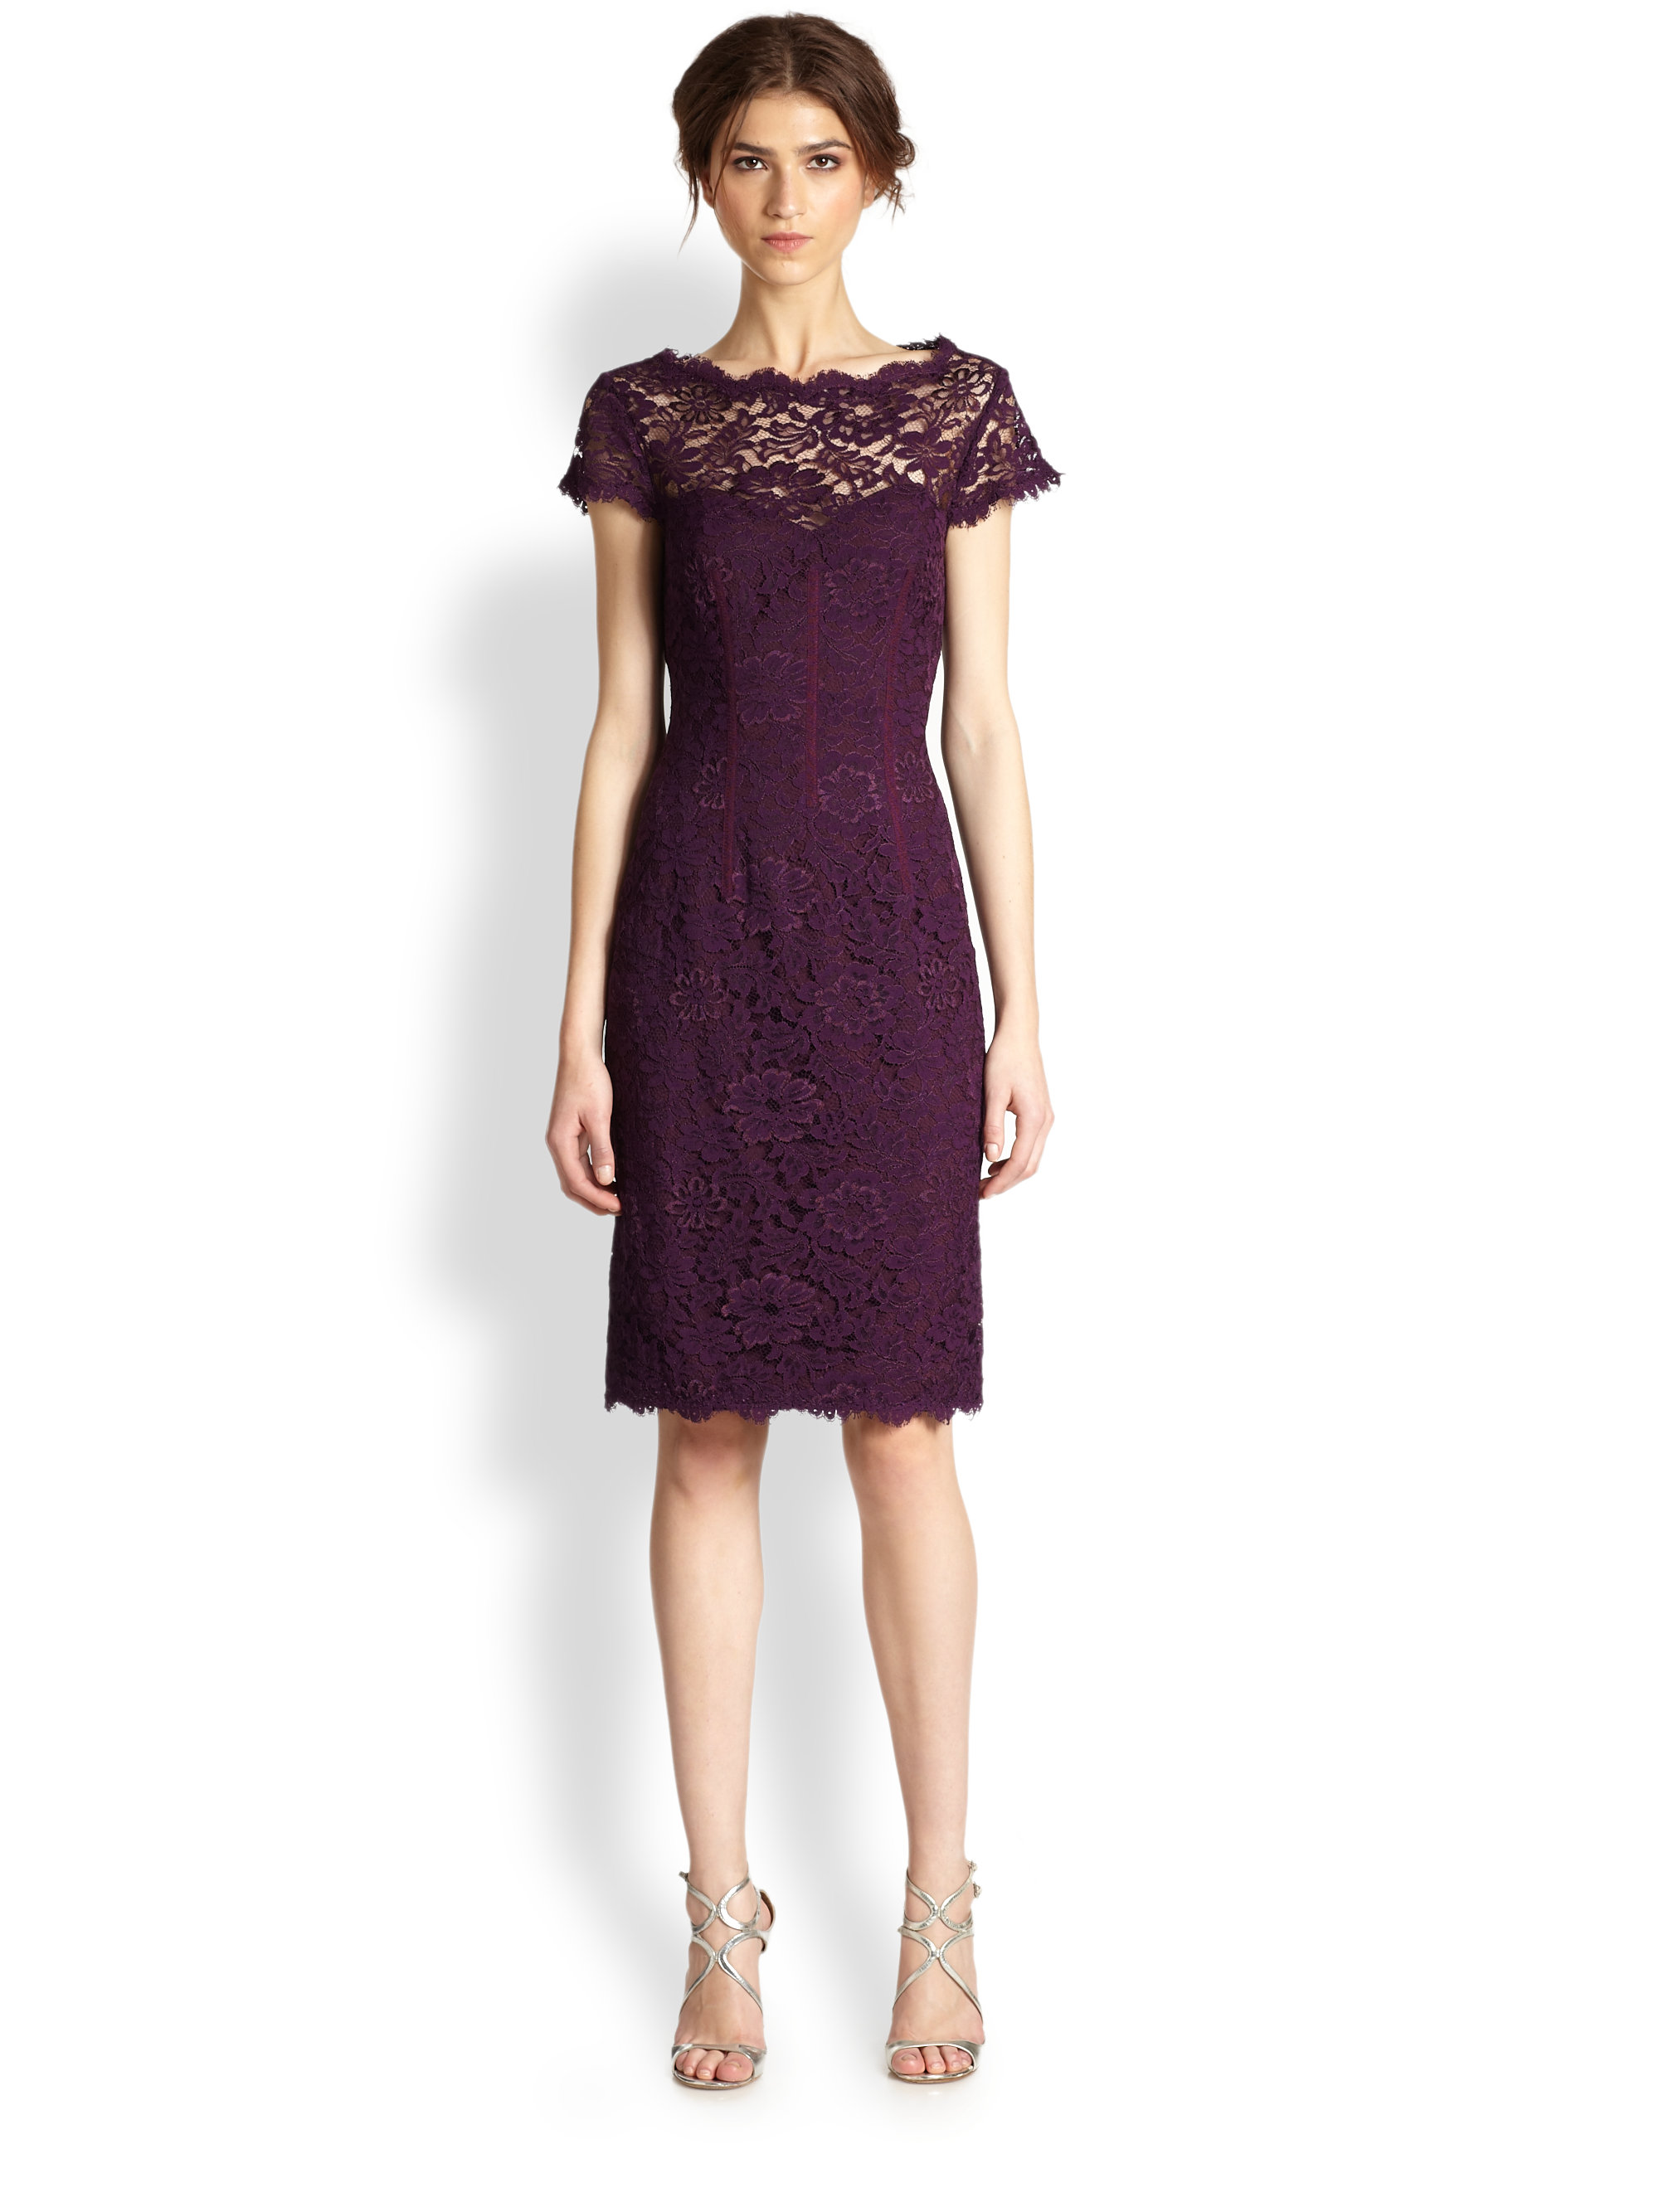 Saks Designer Dress Sale